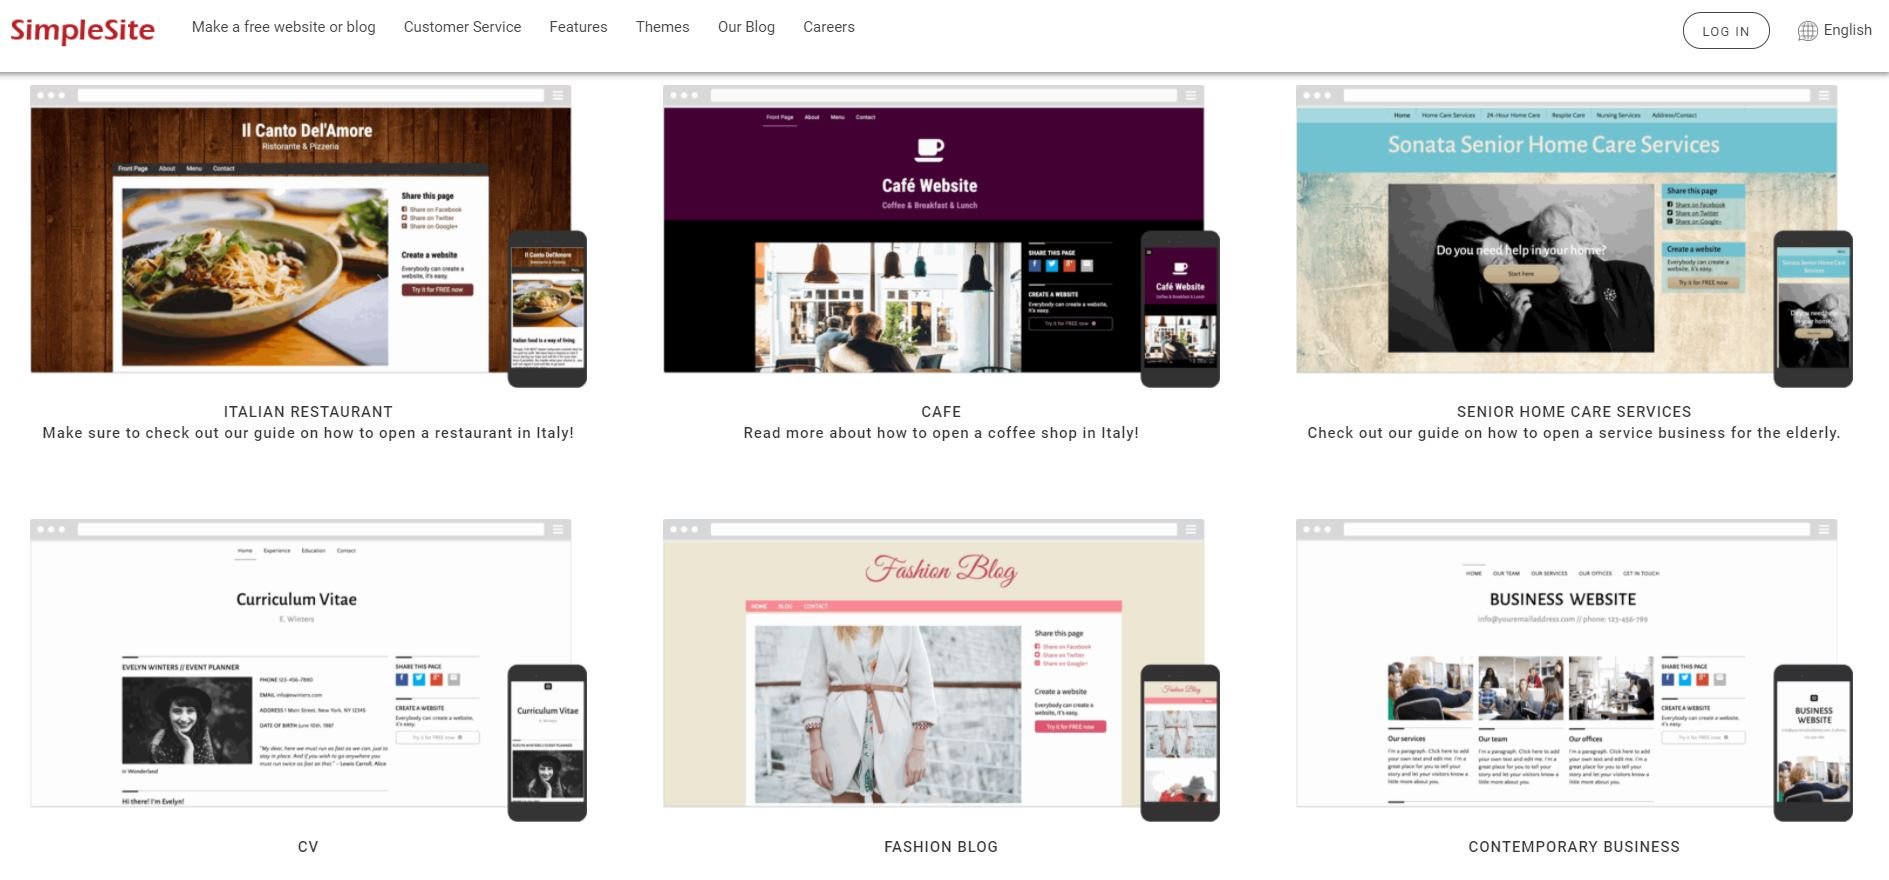 SimpleSite Themes